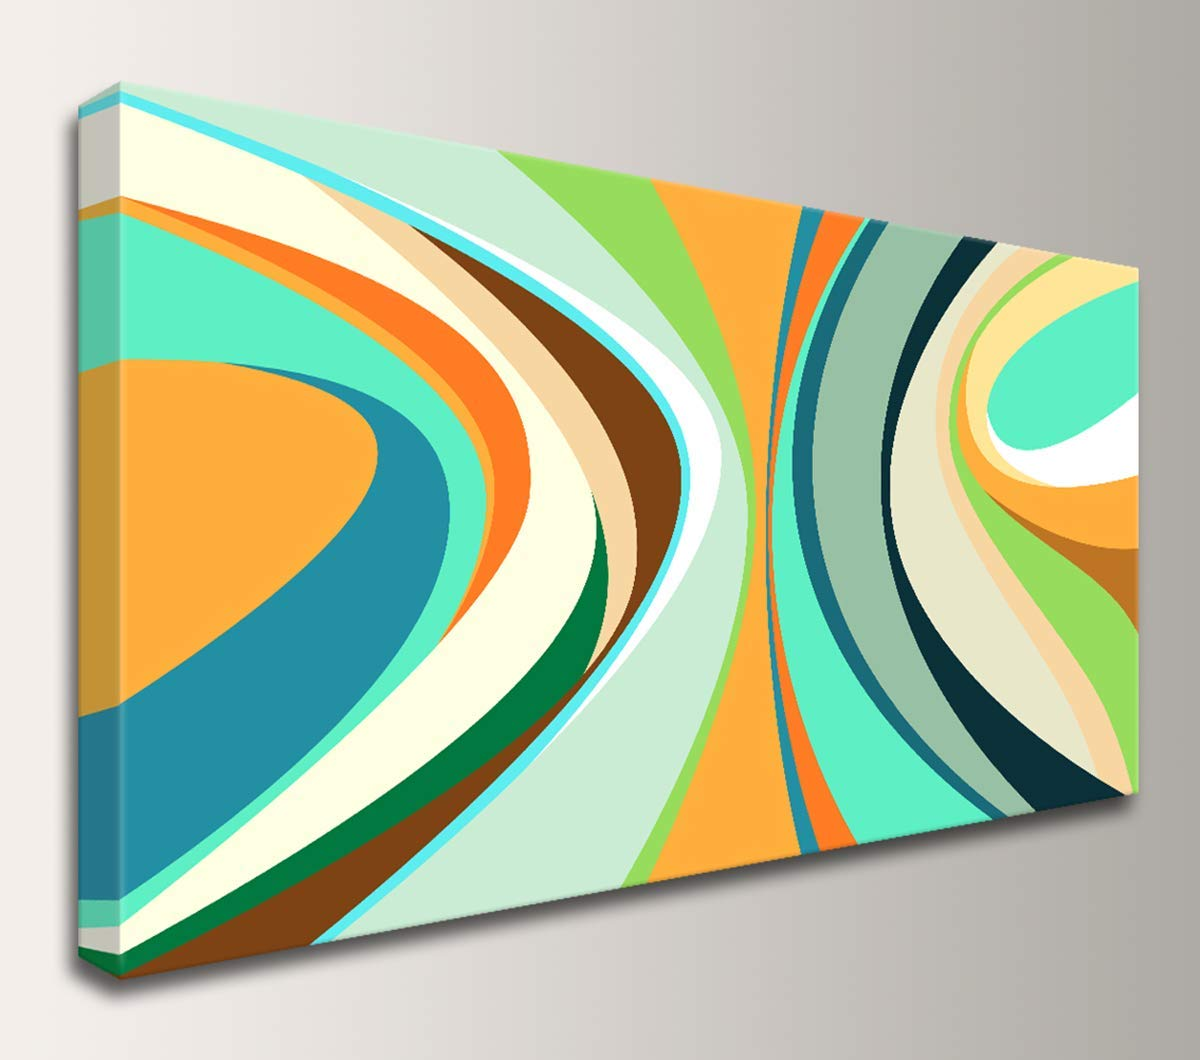 Buy quot;Tropicana   Mid Century Modern Art   Large Colorful ...